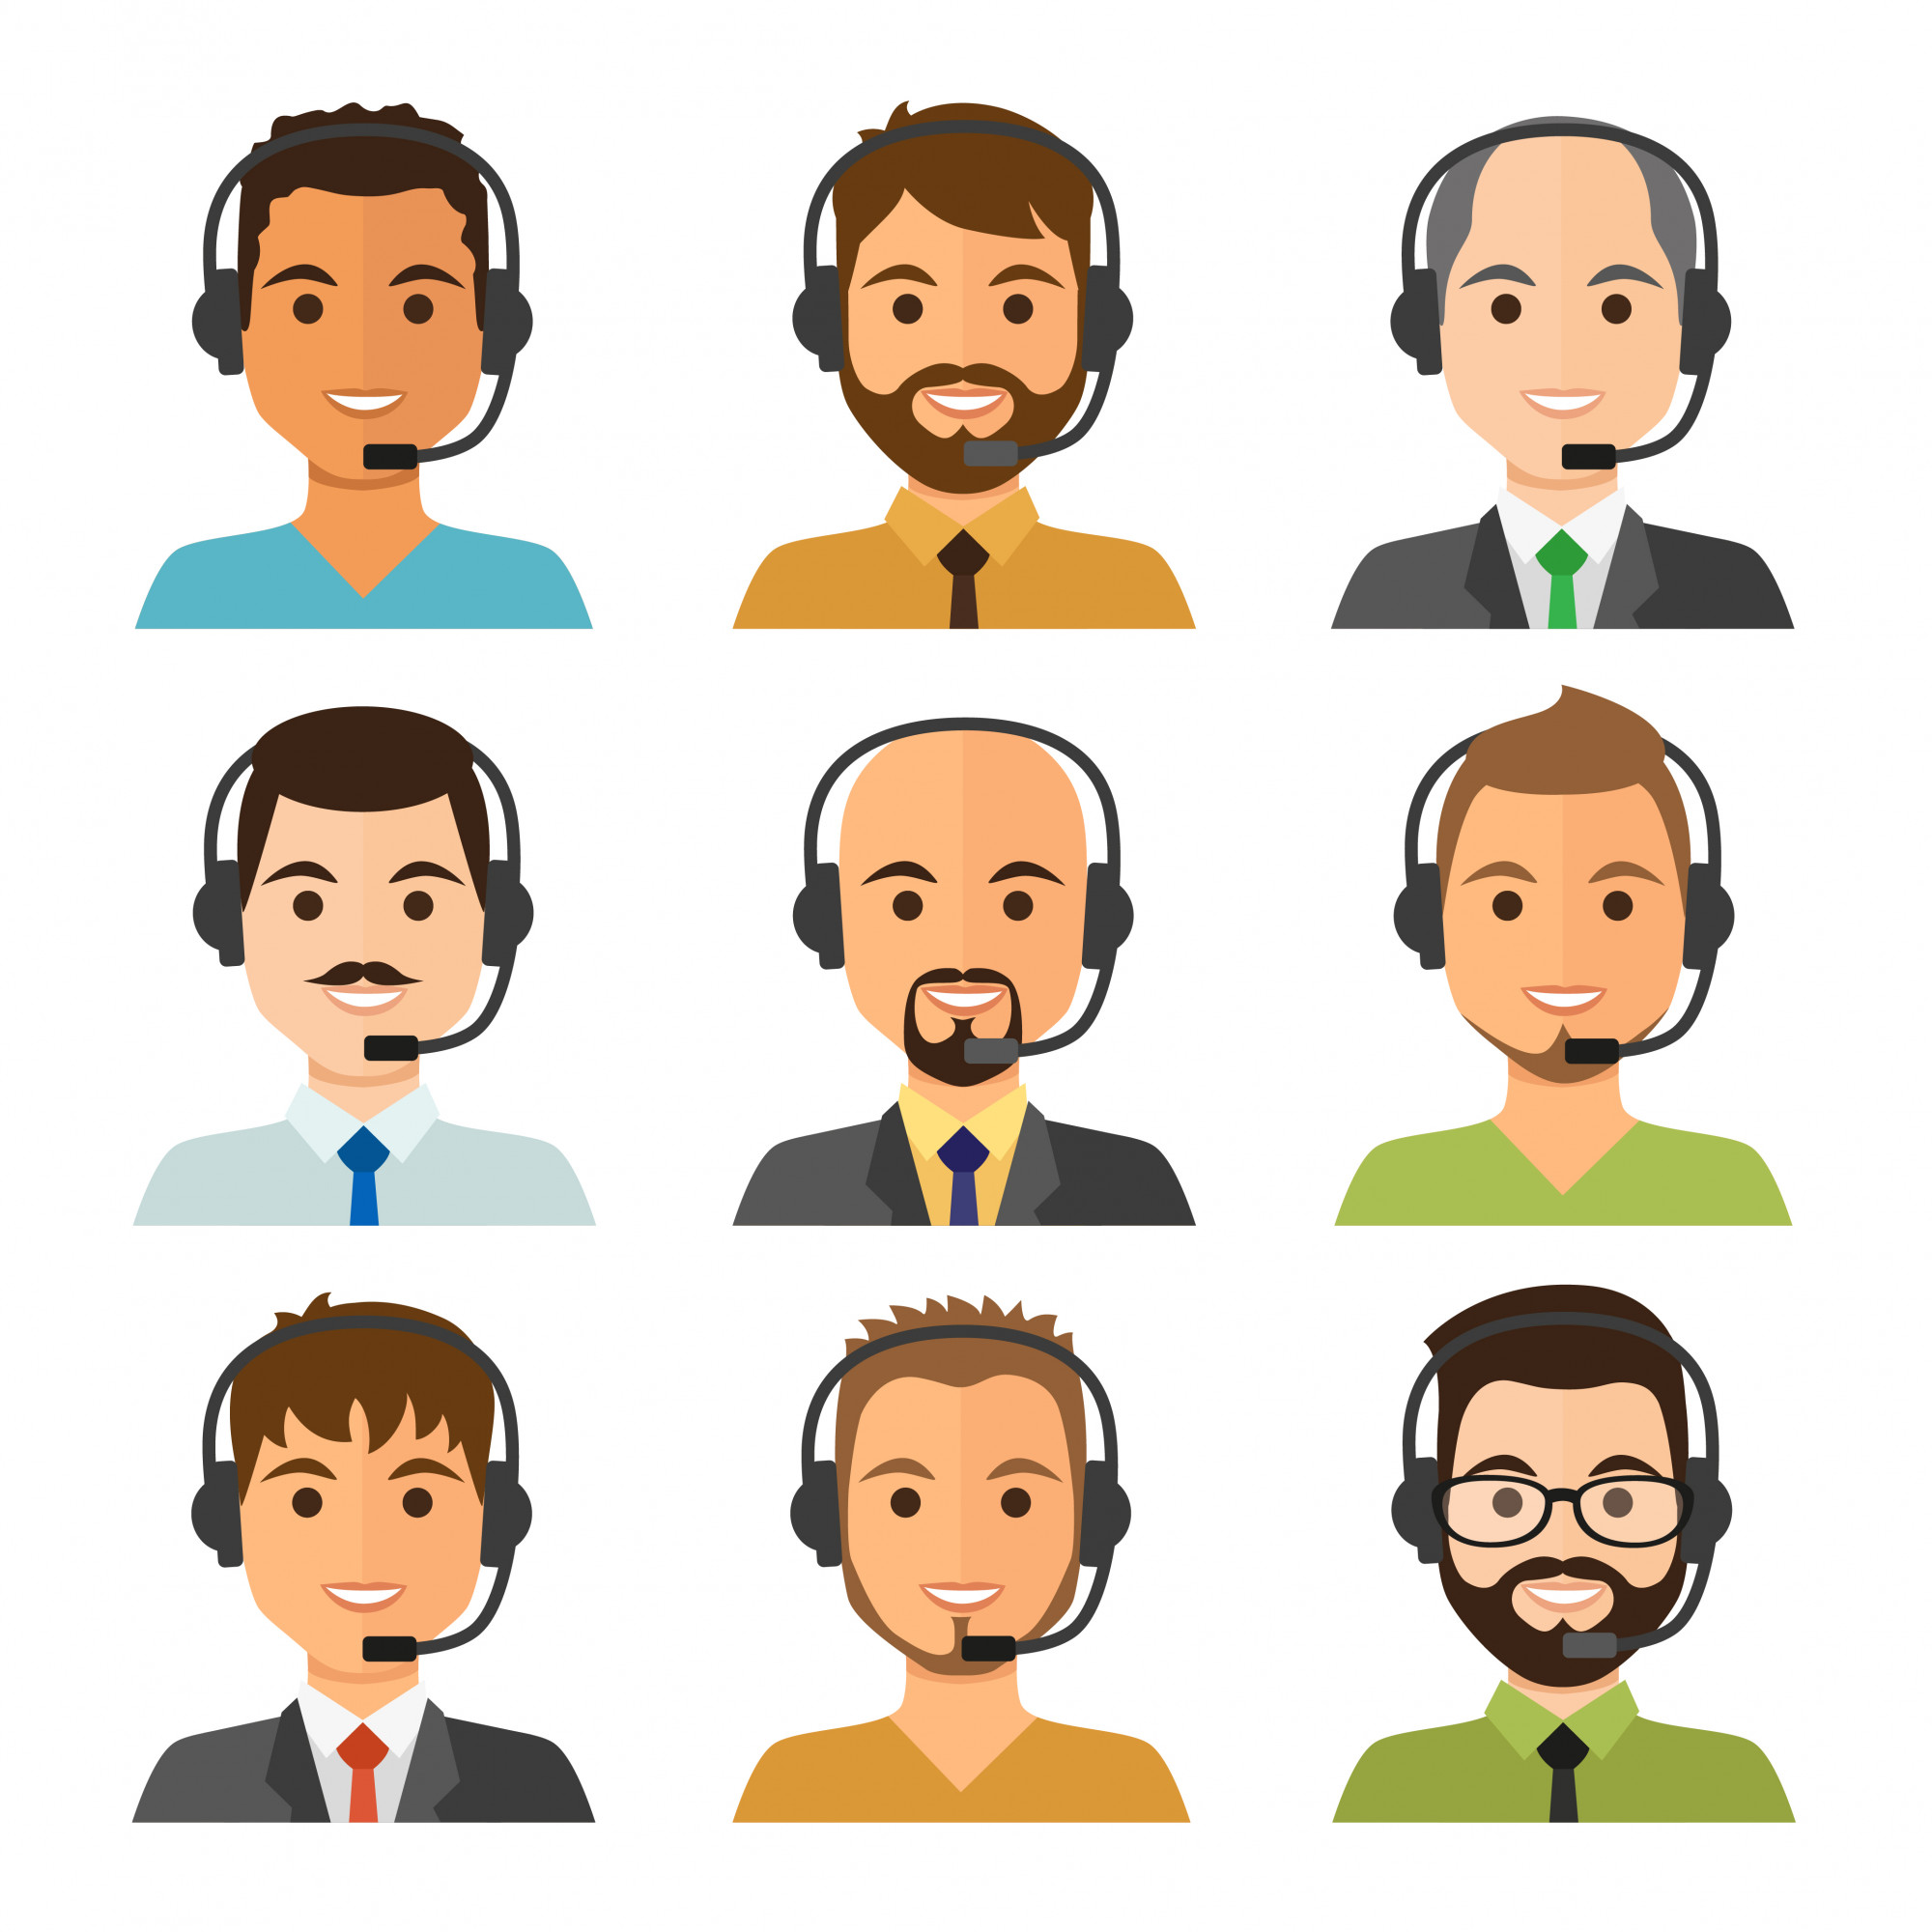 Call center agents avatars, business man collection